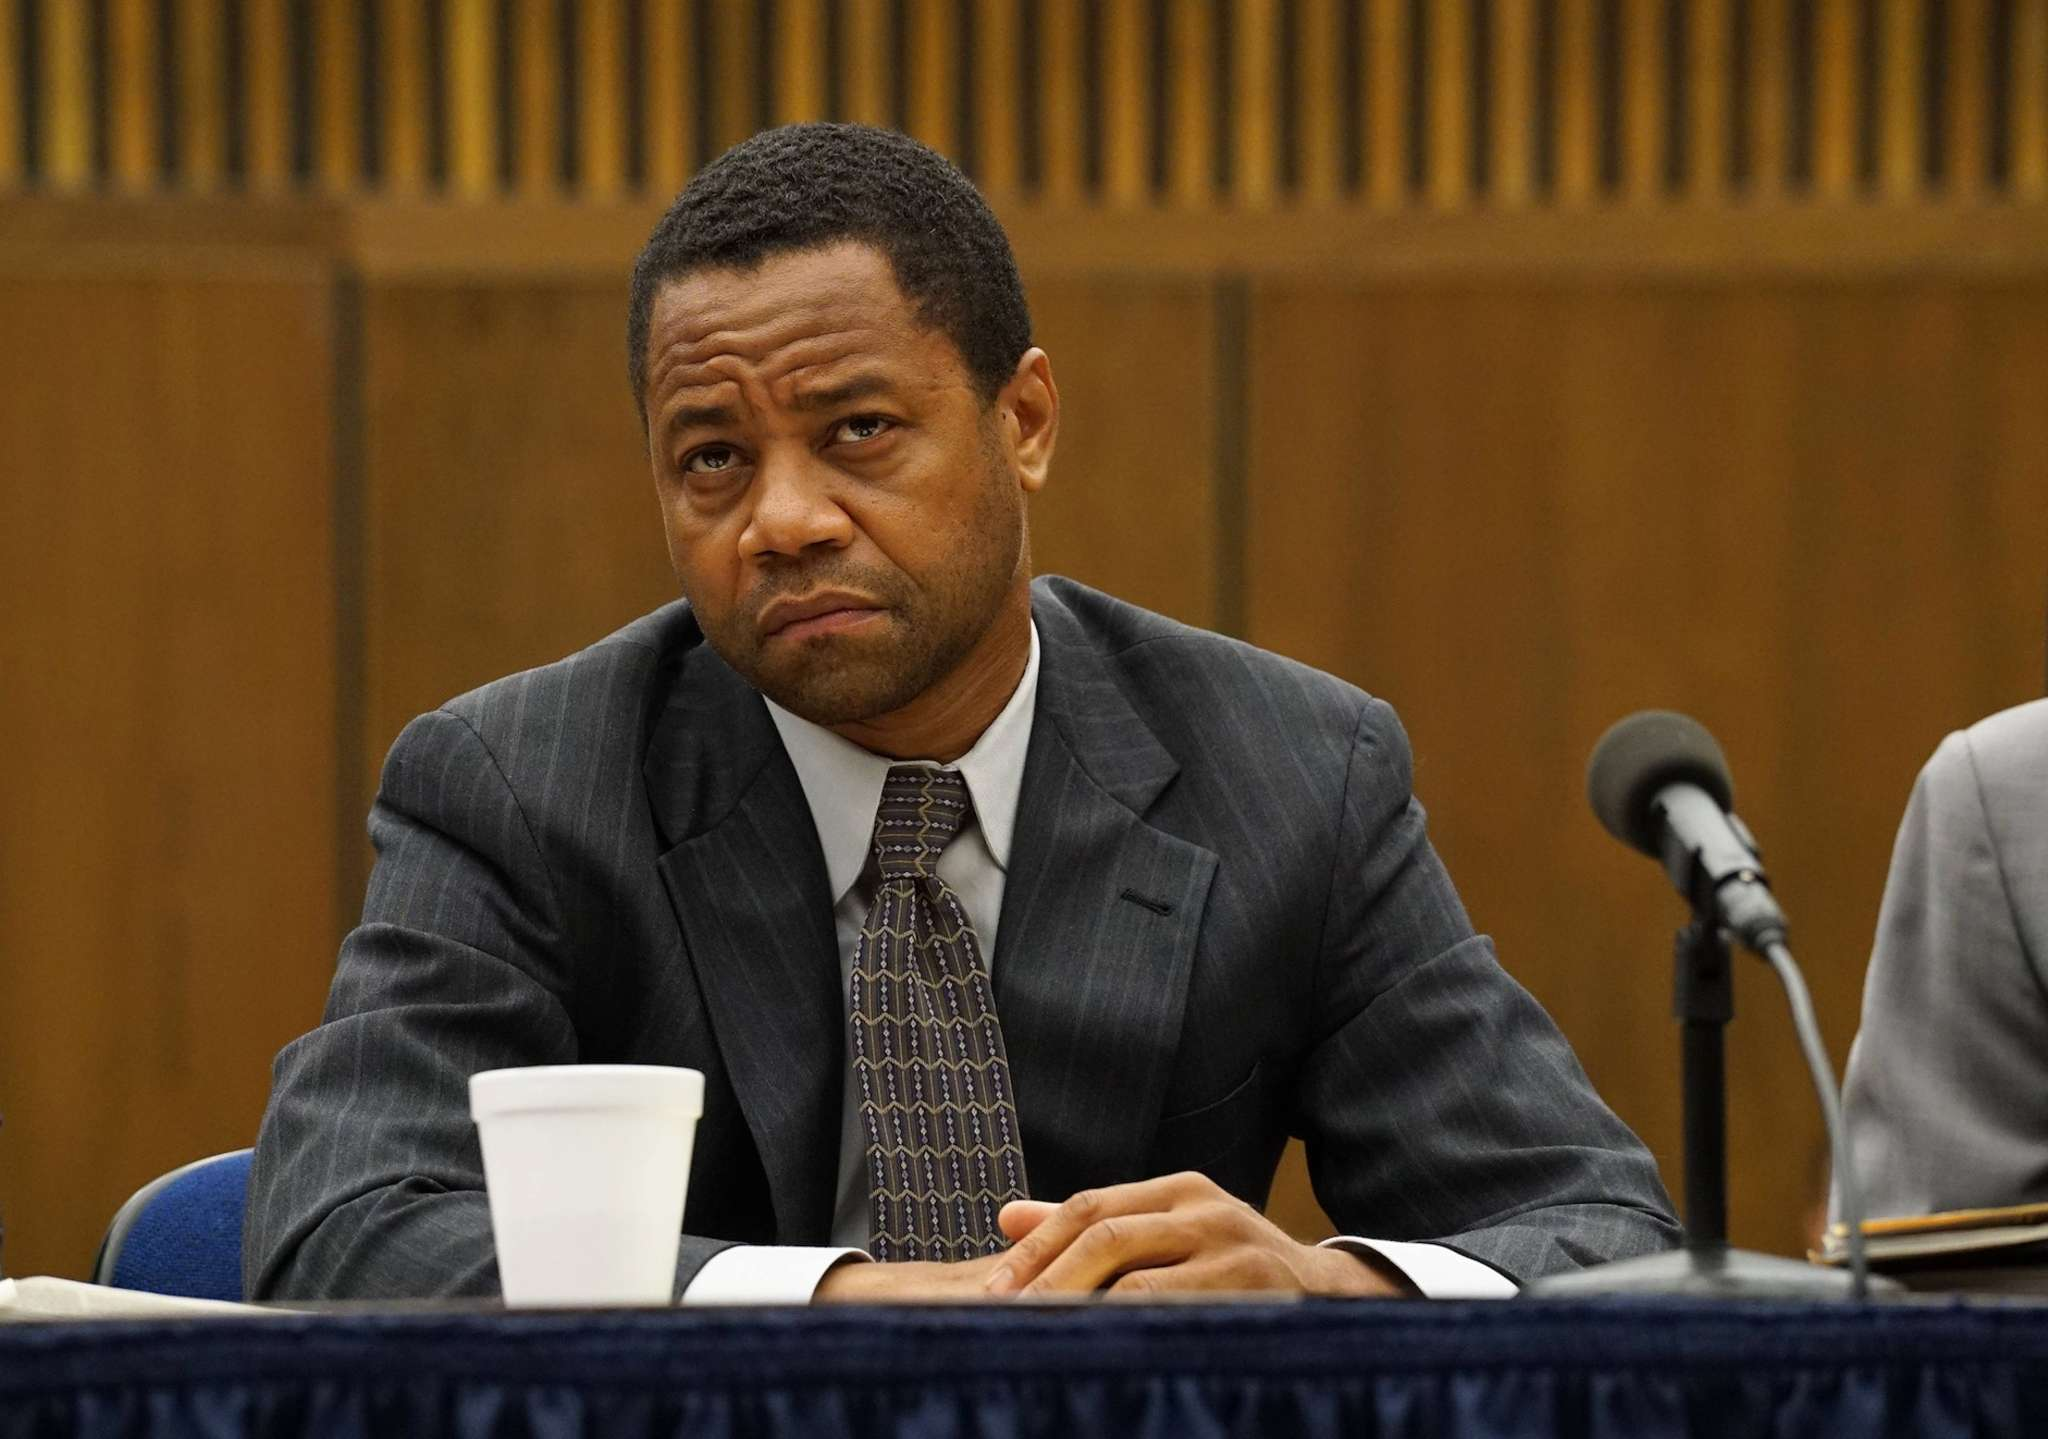 """""""The People v. O.J. Simpson,"""" with Cuba Gooding Jr. as the defendant, ends Tuesday. The FX show put the case in perspective, showing how much jurors matter."""